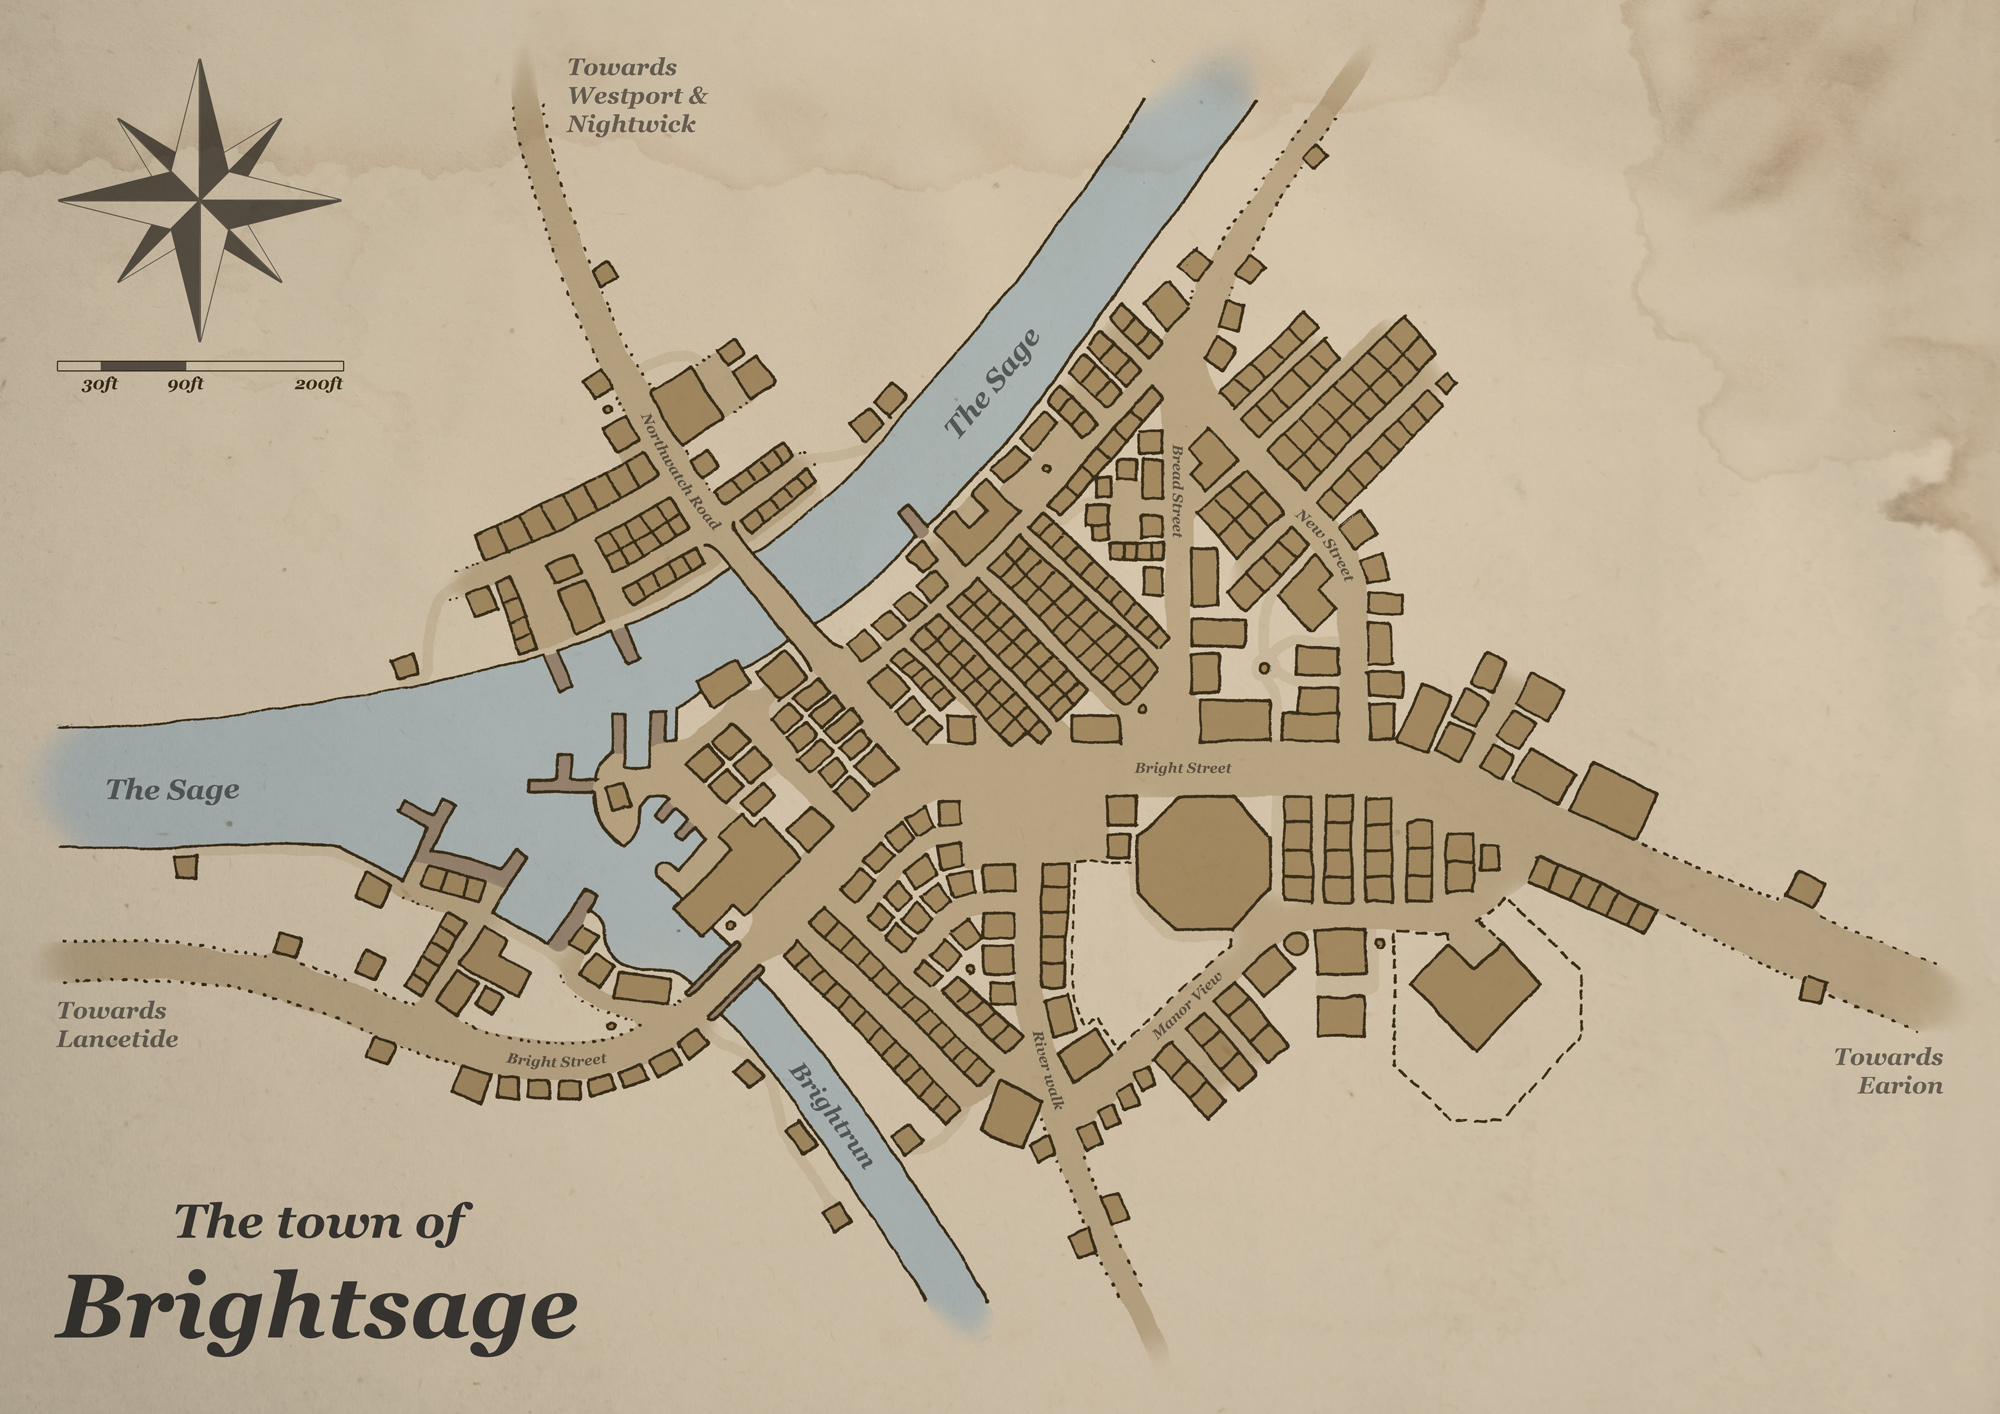 A simple map of a fantasy town named Brightsage. It's a town at the meeting of two rivers and has a large east–west trade route going through it.